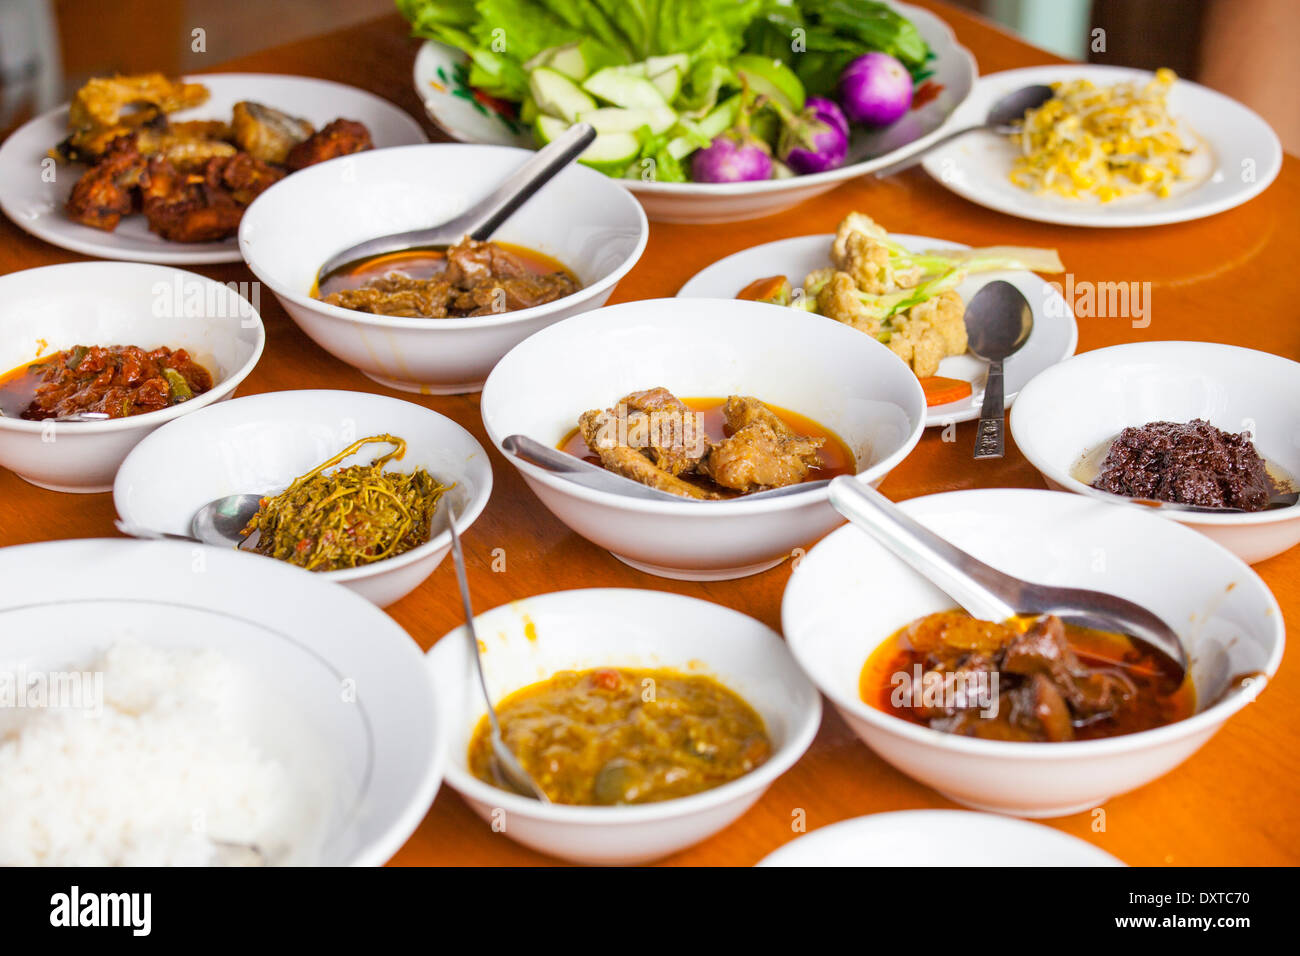 Typical Burmese food at a restaurant in the ruins of Bagan, Myanmar - Stock Image